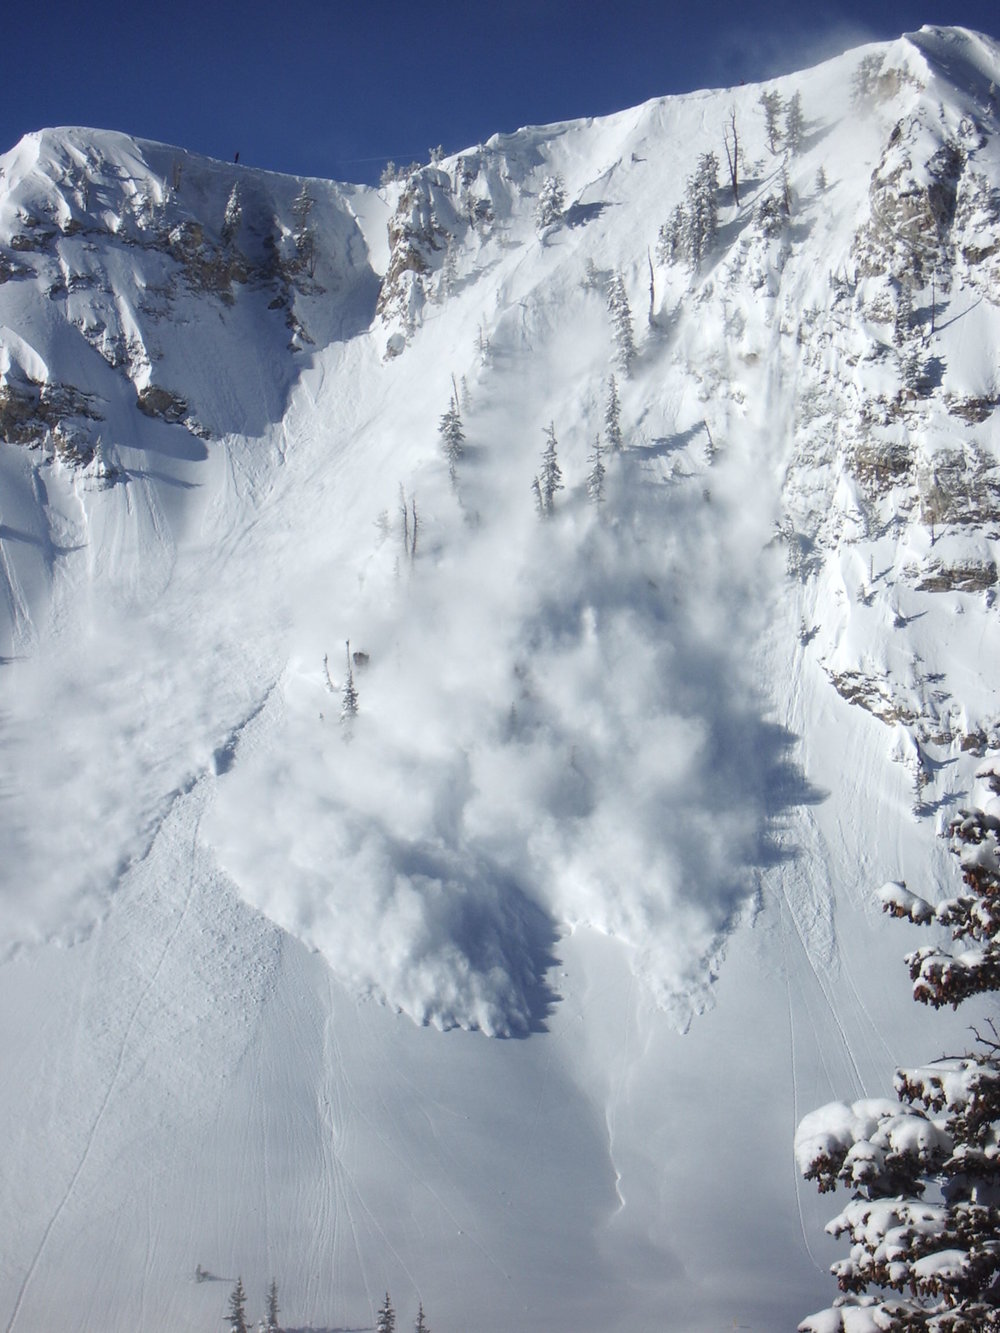 Avalanche Control in progress on Fantasy Ridge.  Solitude, UT.  Photo: Jonathon Spitzer.